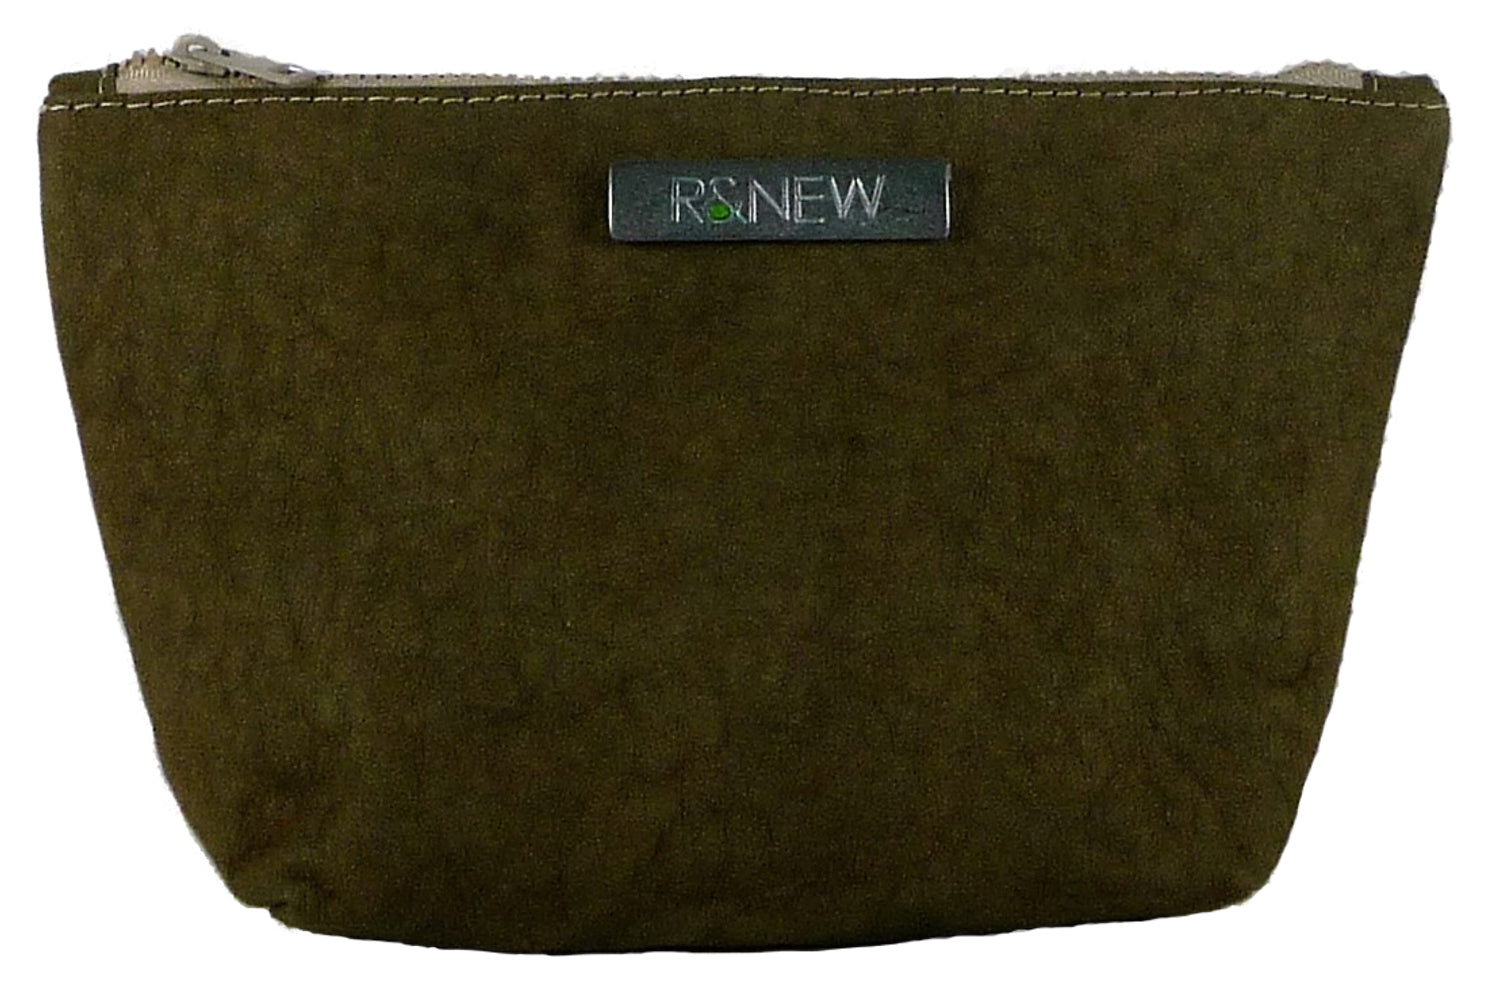 0492a303dd ... vegan clutch purse bag recycled paper green by R&New Olive ecofriendly  ...